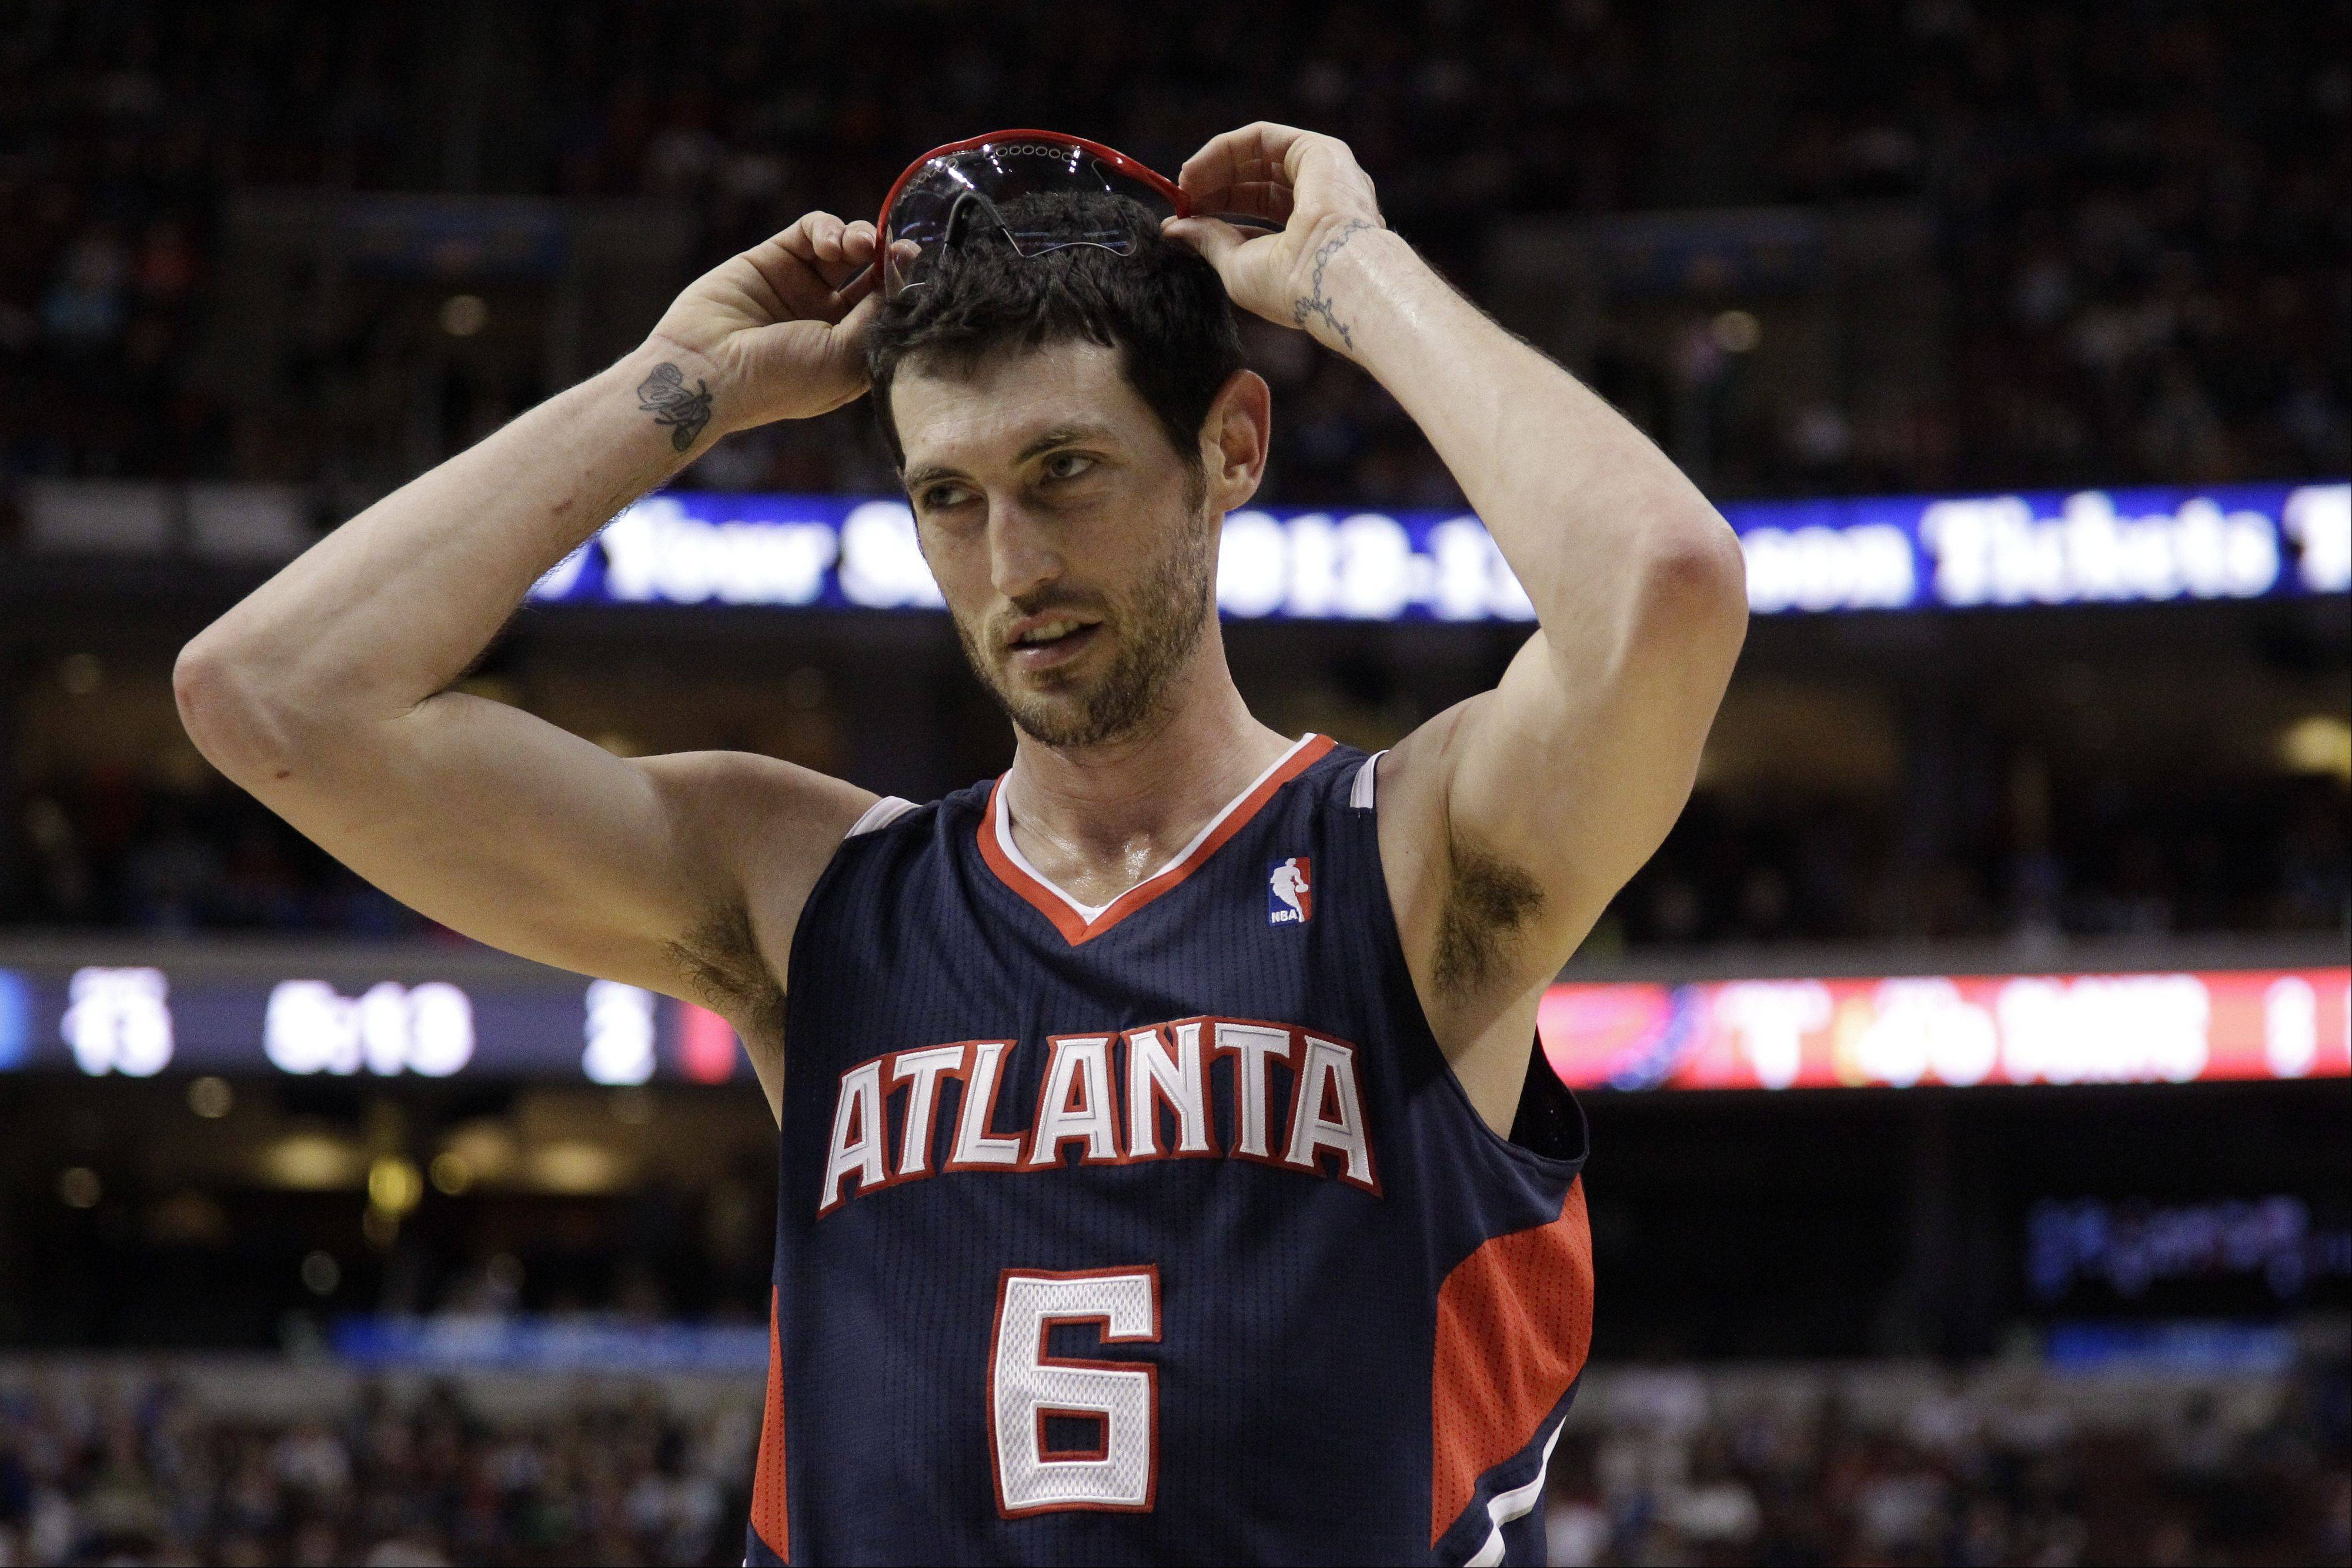 Atlanta Hawks' Kirk Hinrich during an NBA basketball game against the Philadelphia 76ers, Saturday, March 31, 2012, in Philadelphia.